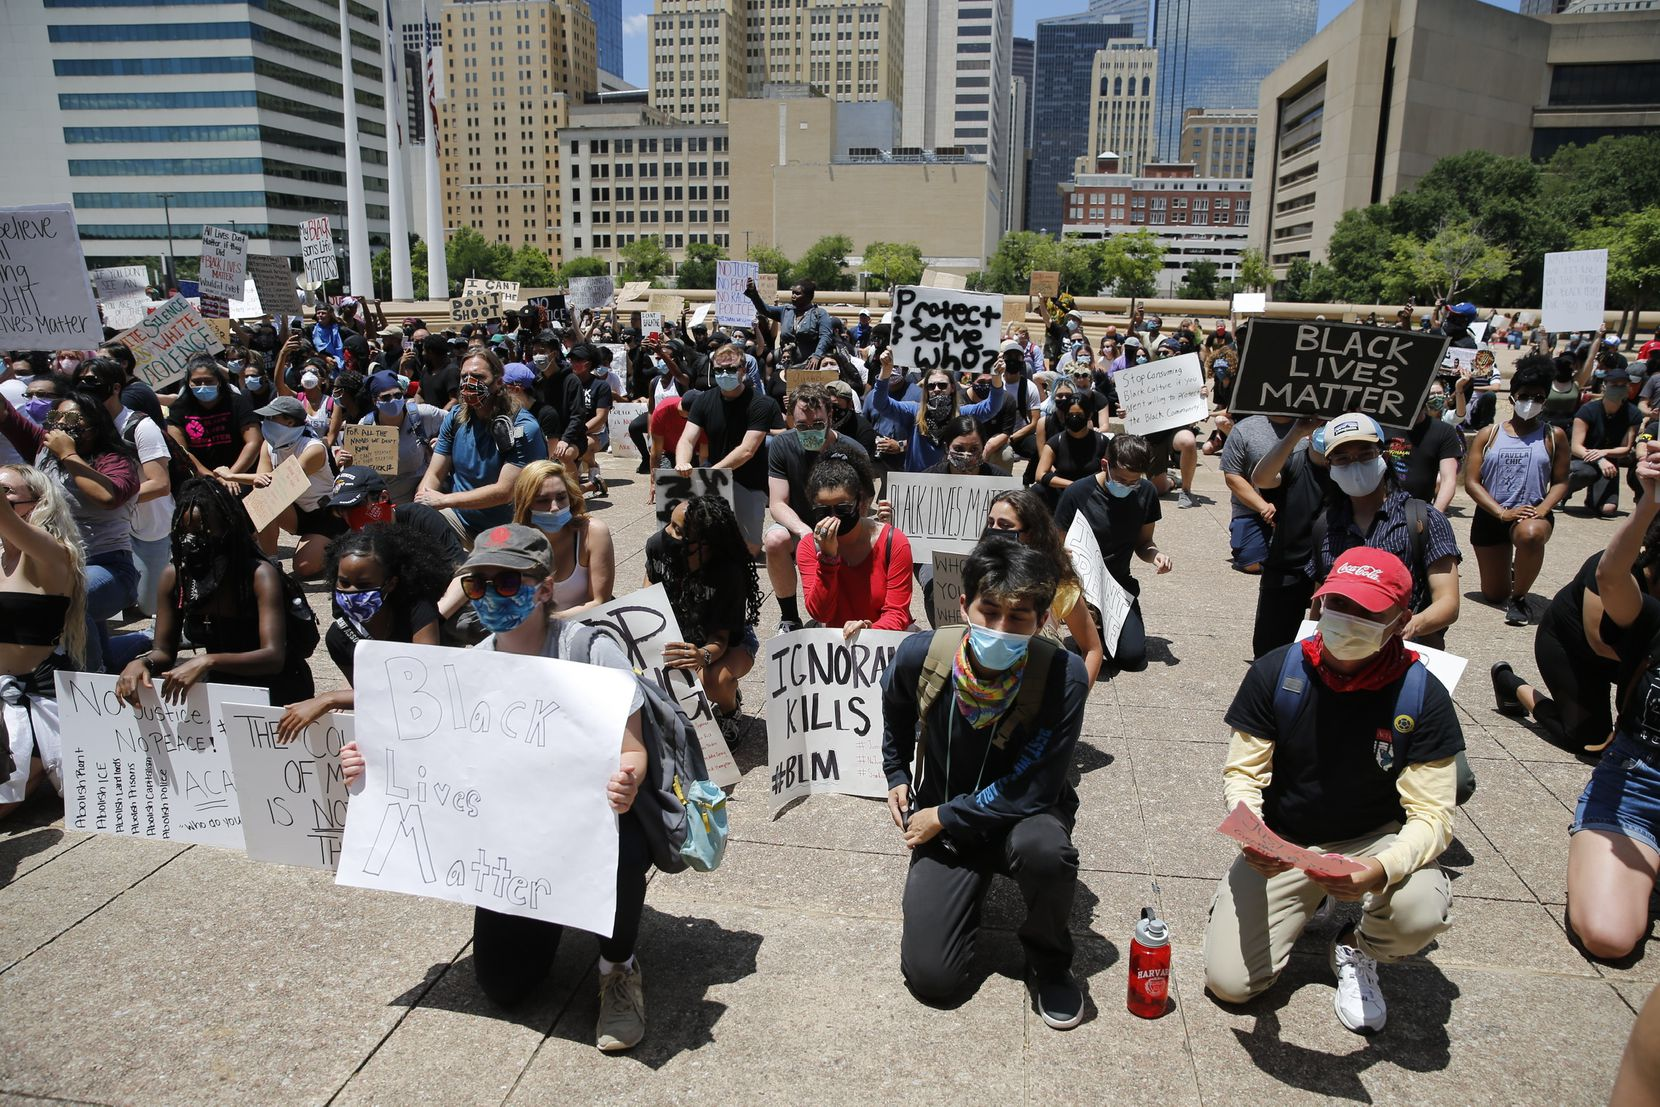 Protesters rally during a demonstration against police brutality in downtown Dallas, on Saturday, May 30, 2020. George Floyd died in police custody in Minneapolis on May 25.